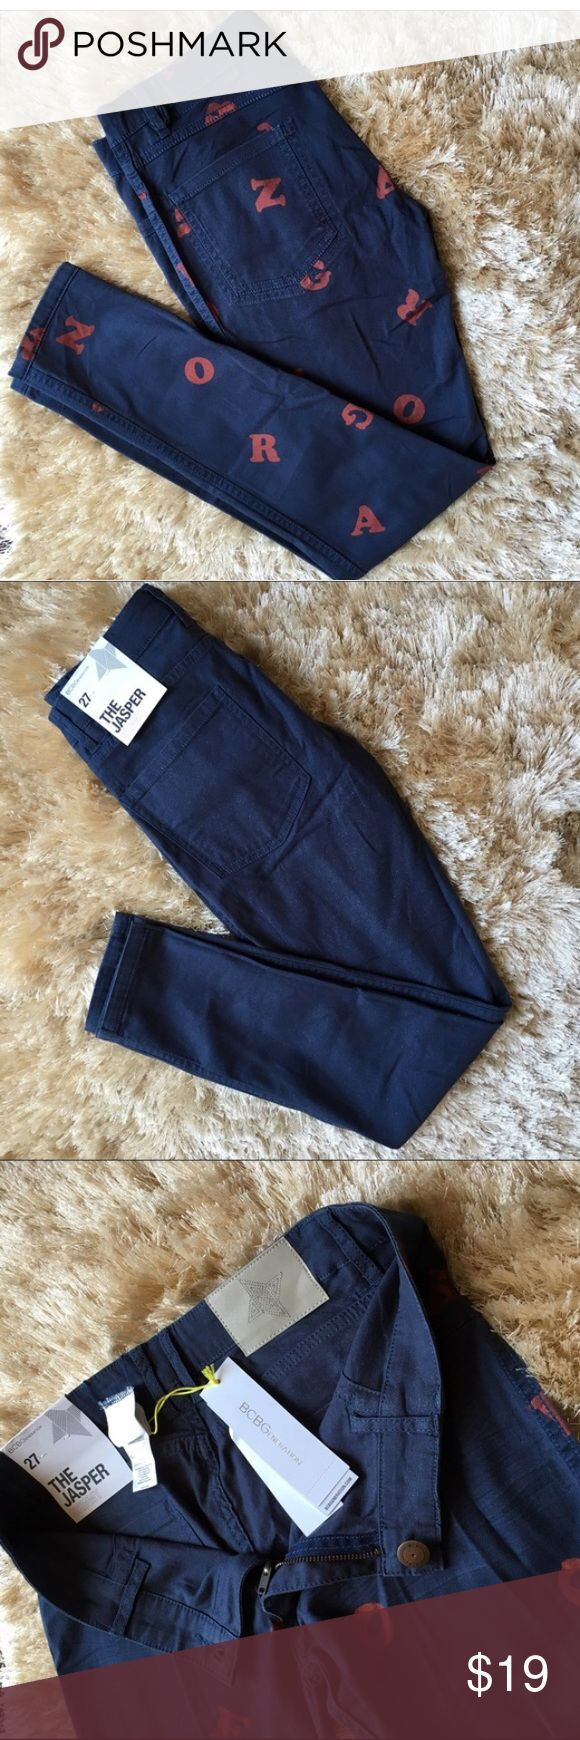 """NWT BCBGENERATION JASPER REVERSIBLE JEANS 27 BCBGENERATION Reversible Jasper Jeans  Retail Price: $118  NWT  Size: 27  Inseam 30"""" Rise 8"""" Waist 33"""" Hip 38""""    Reversible stretch denim. Navy blue with dark red letters on one side and navy blue with subtle metallic sheen on the other side. Wear them both ways for a casual or glam look. 98% cotton 2% spandex BCBGeneration Jeans Skinny"""